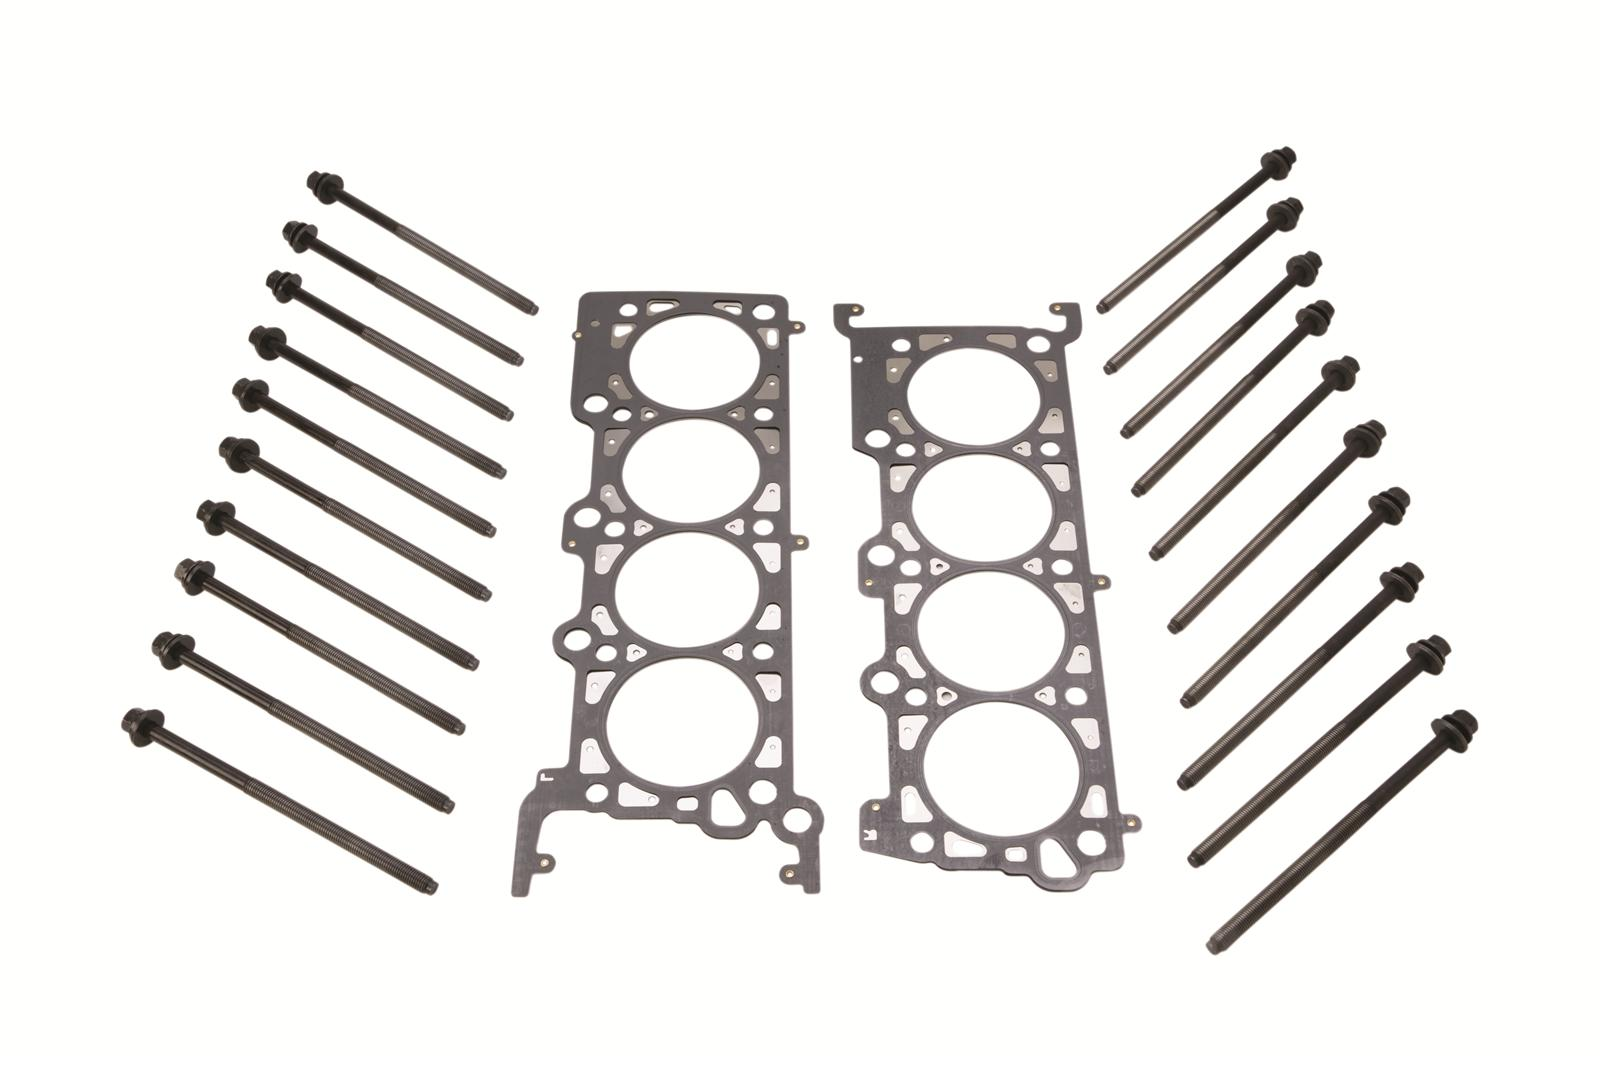 Ford Performance Parts Cylinder Head Changing Kits M